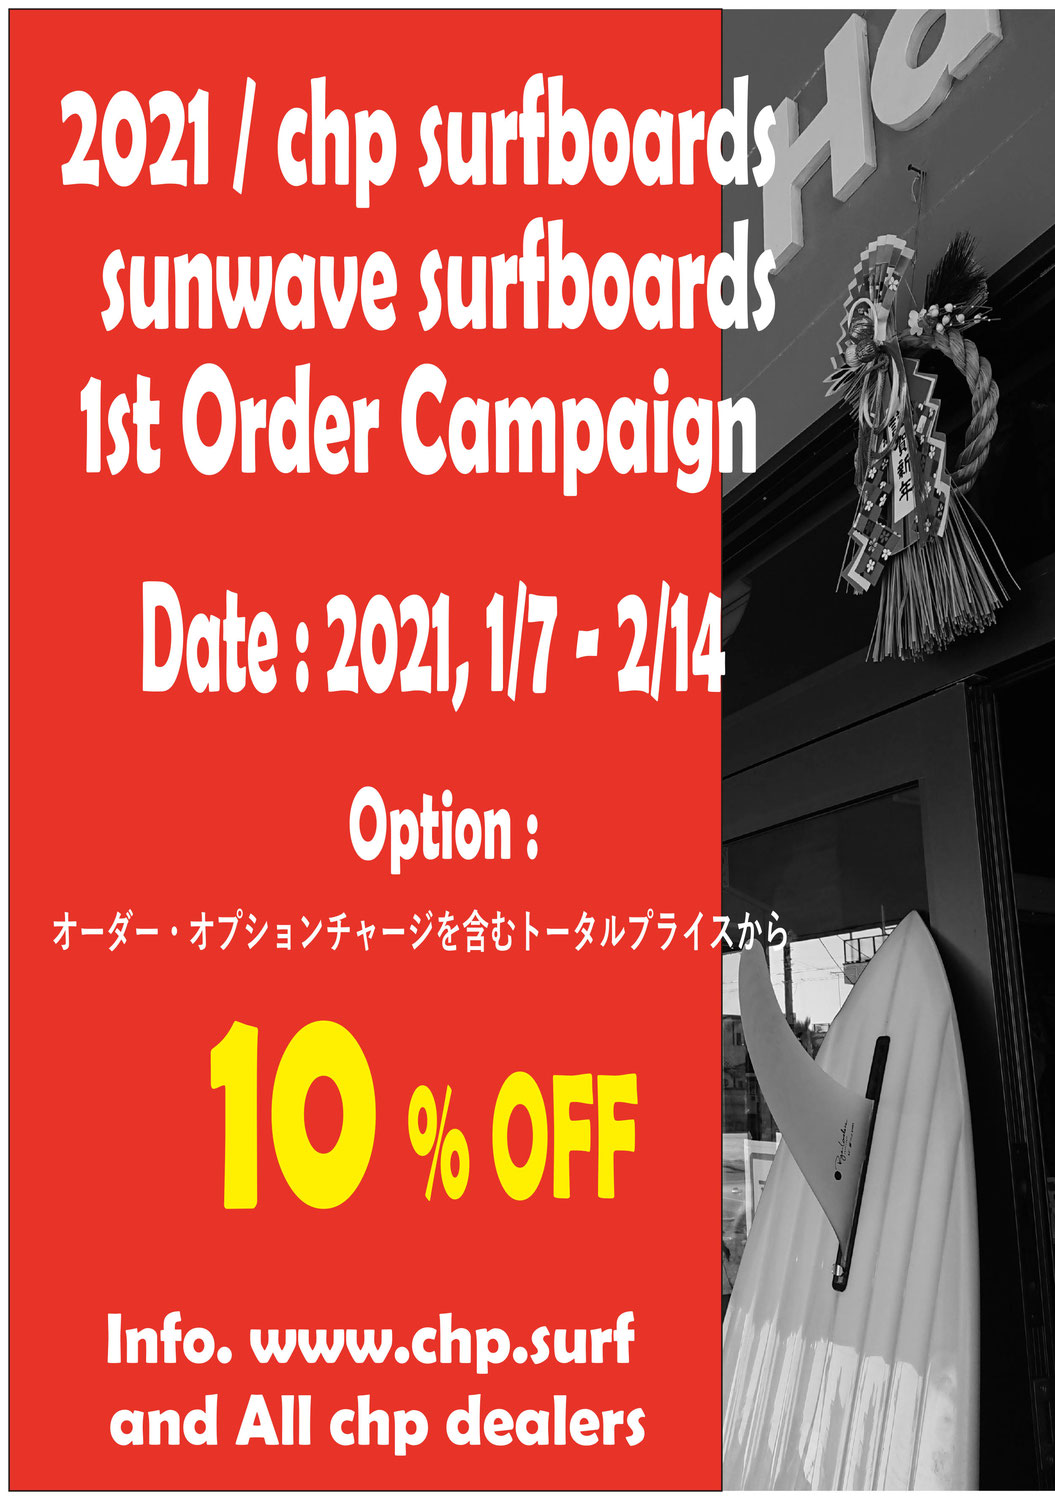 chp/sunwave 1st order campaign!